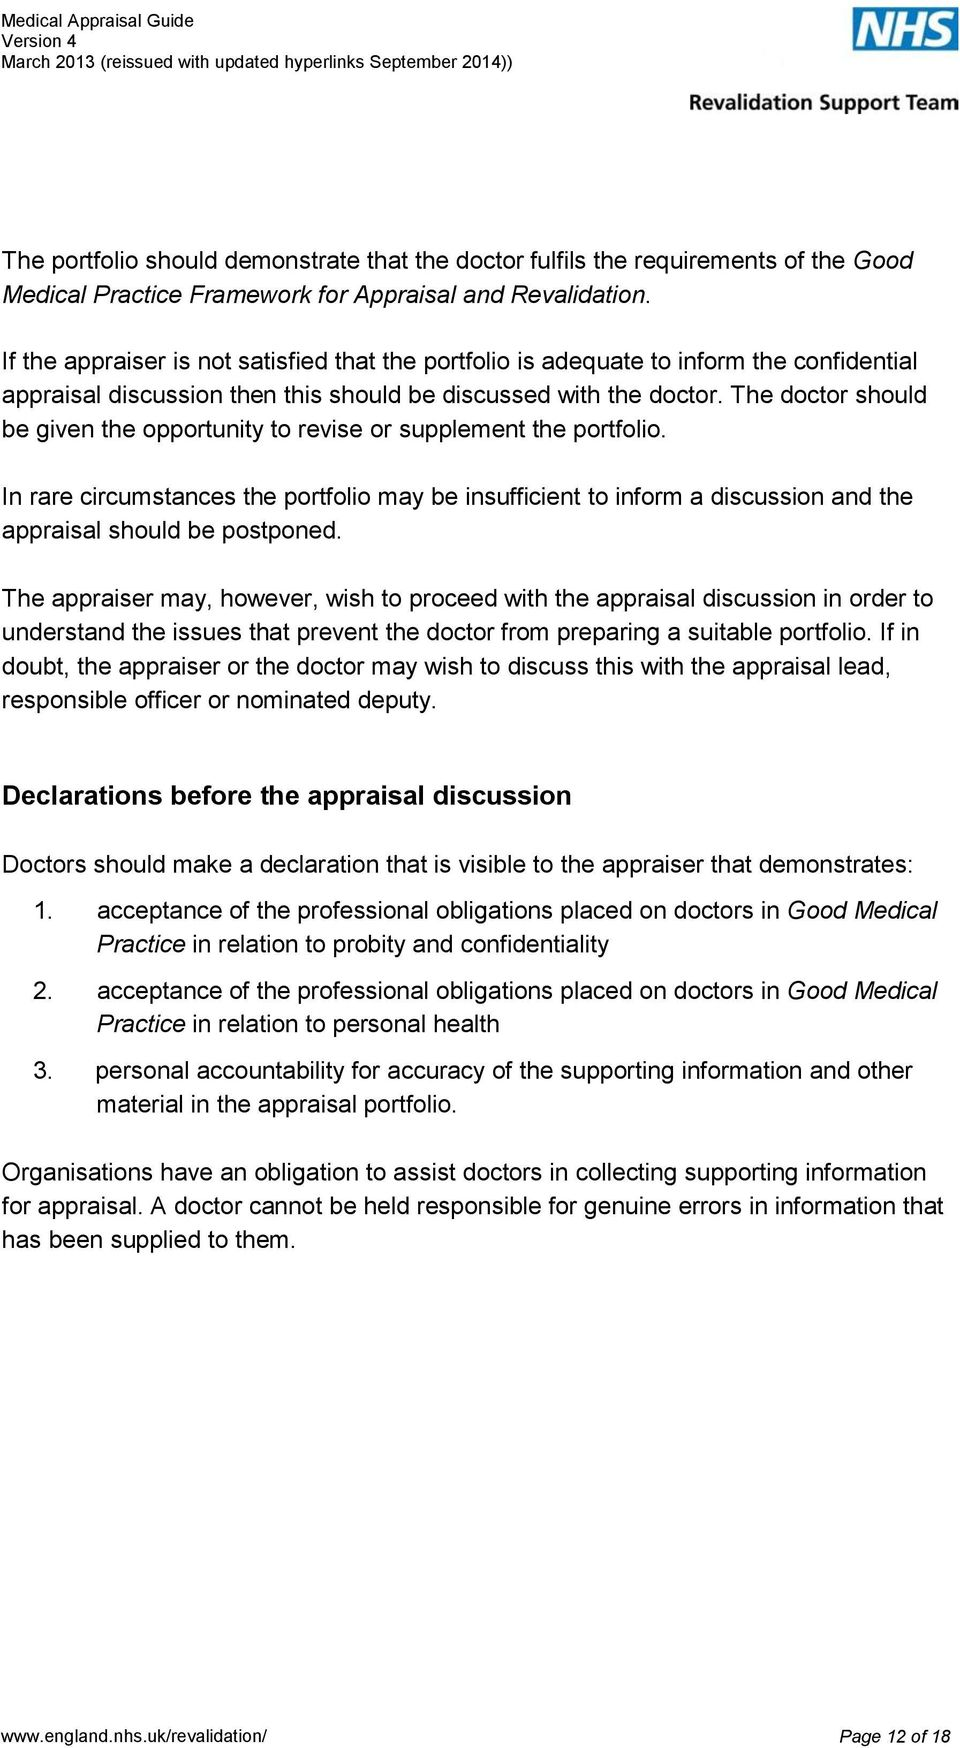 The doctor should be given the opportunity to revise or supplement the portfolio. In rare circumstances the portfolio may be insufficient to inform a discussion and the appraisal should be postponed.